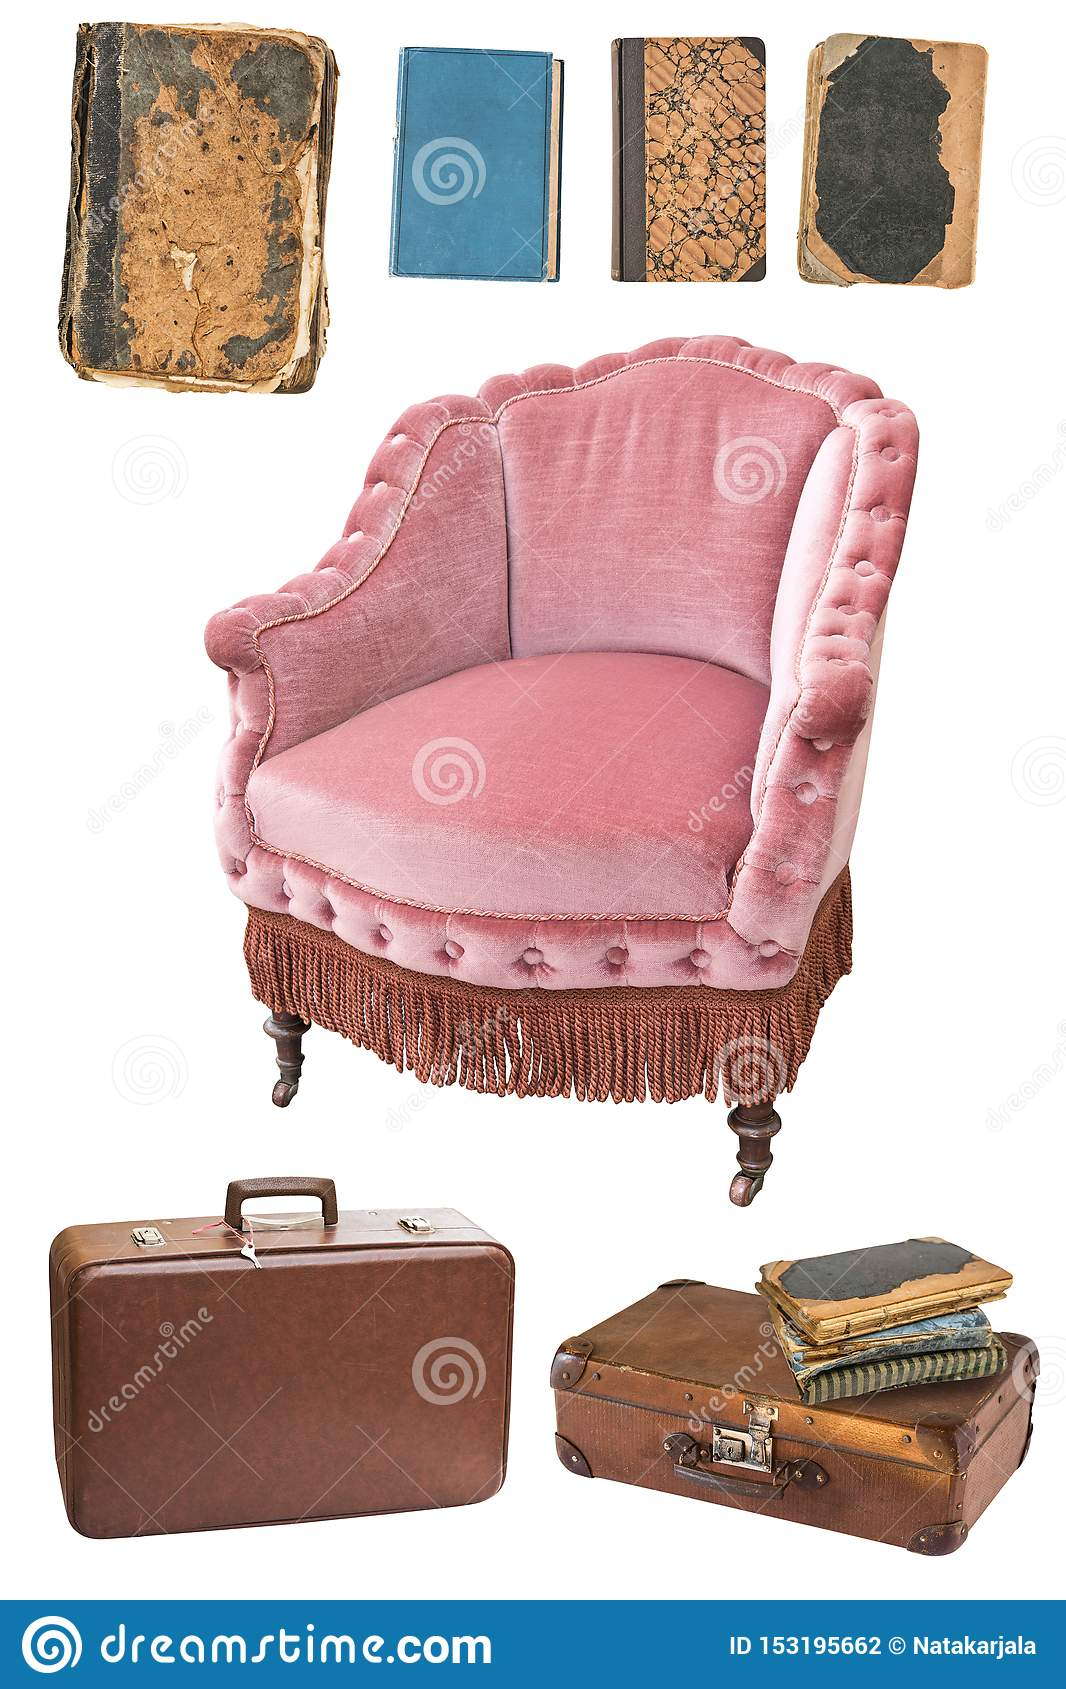 Vintage Pink Armchair, Books, Suitcases Isolated On White ...